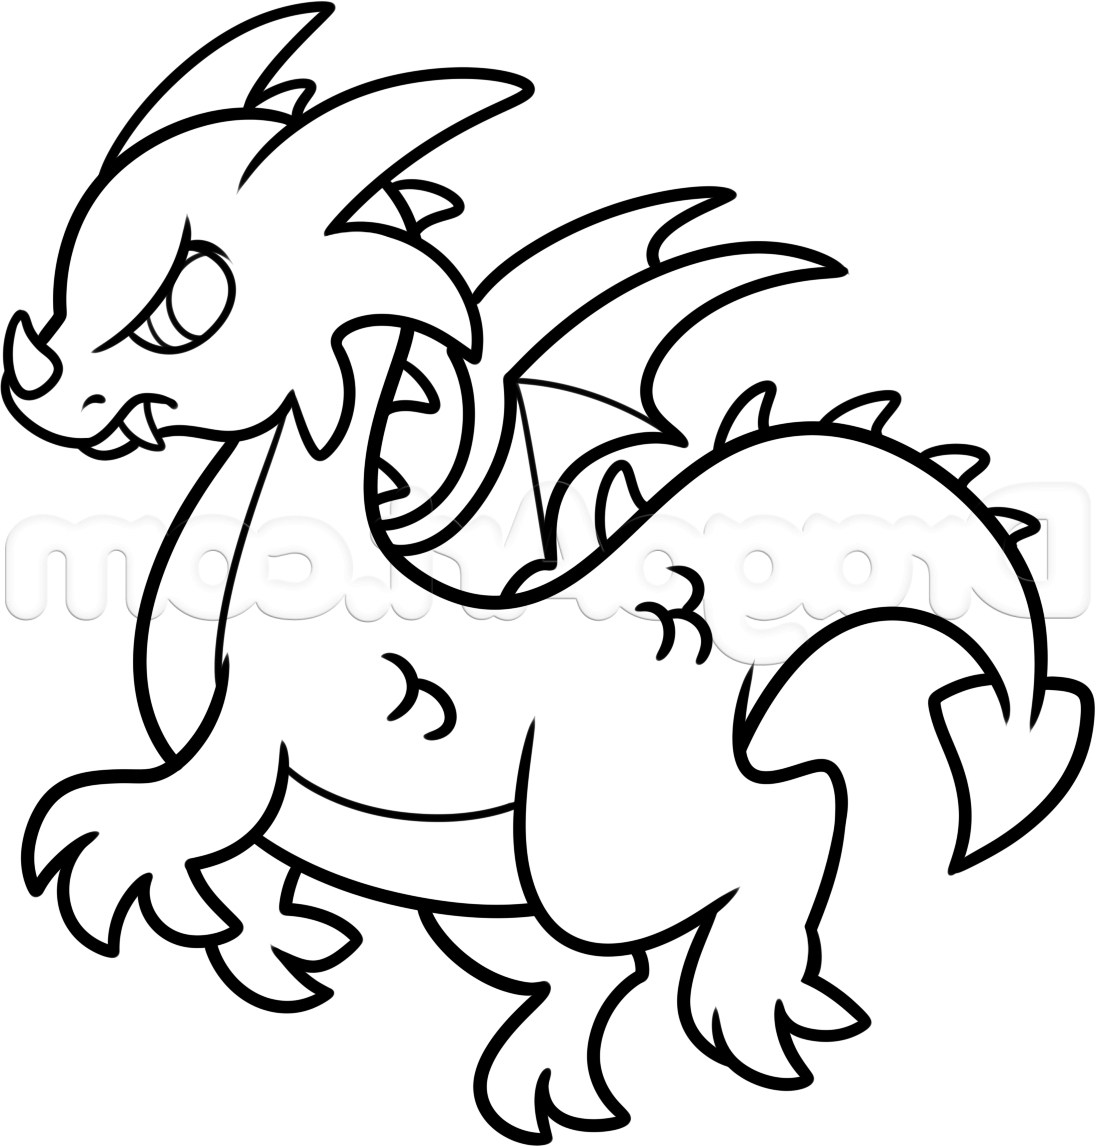 1096x1146 Huge Collection Of 'dragon Drawing Simple' Download More Than